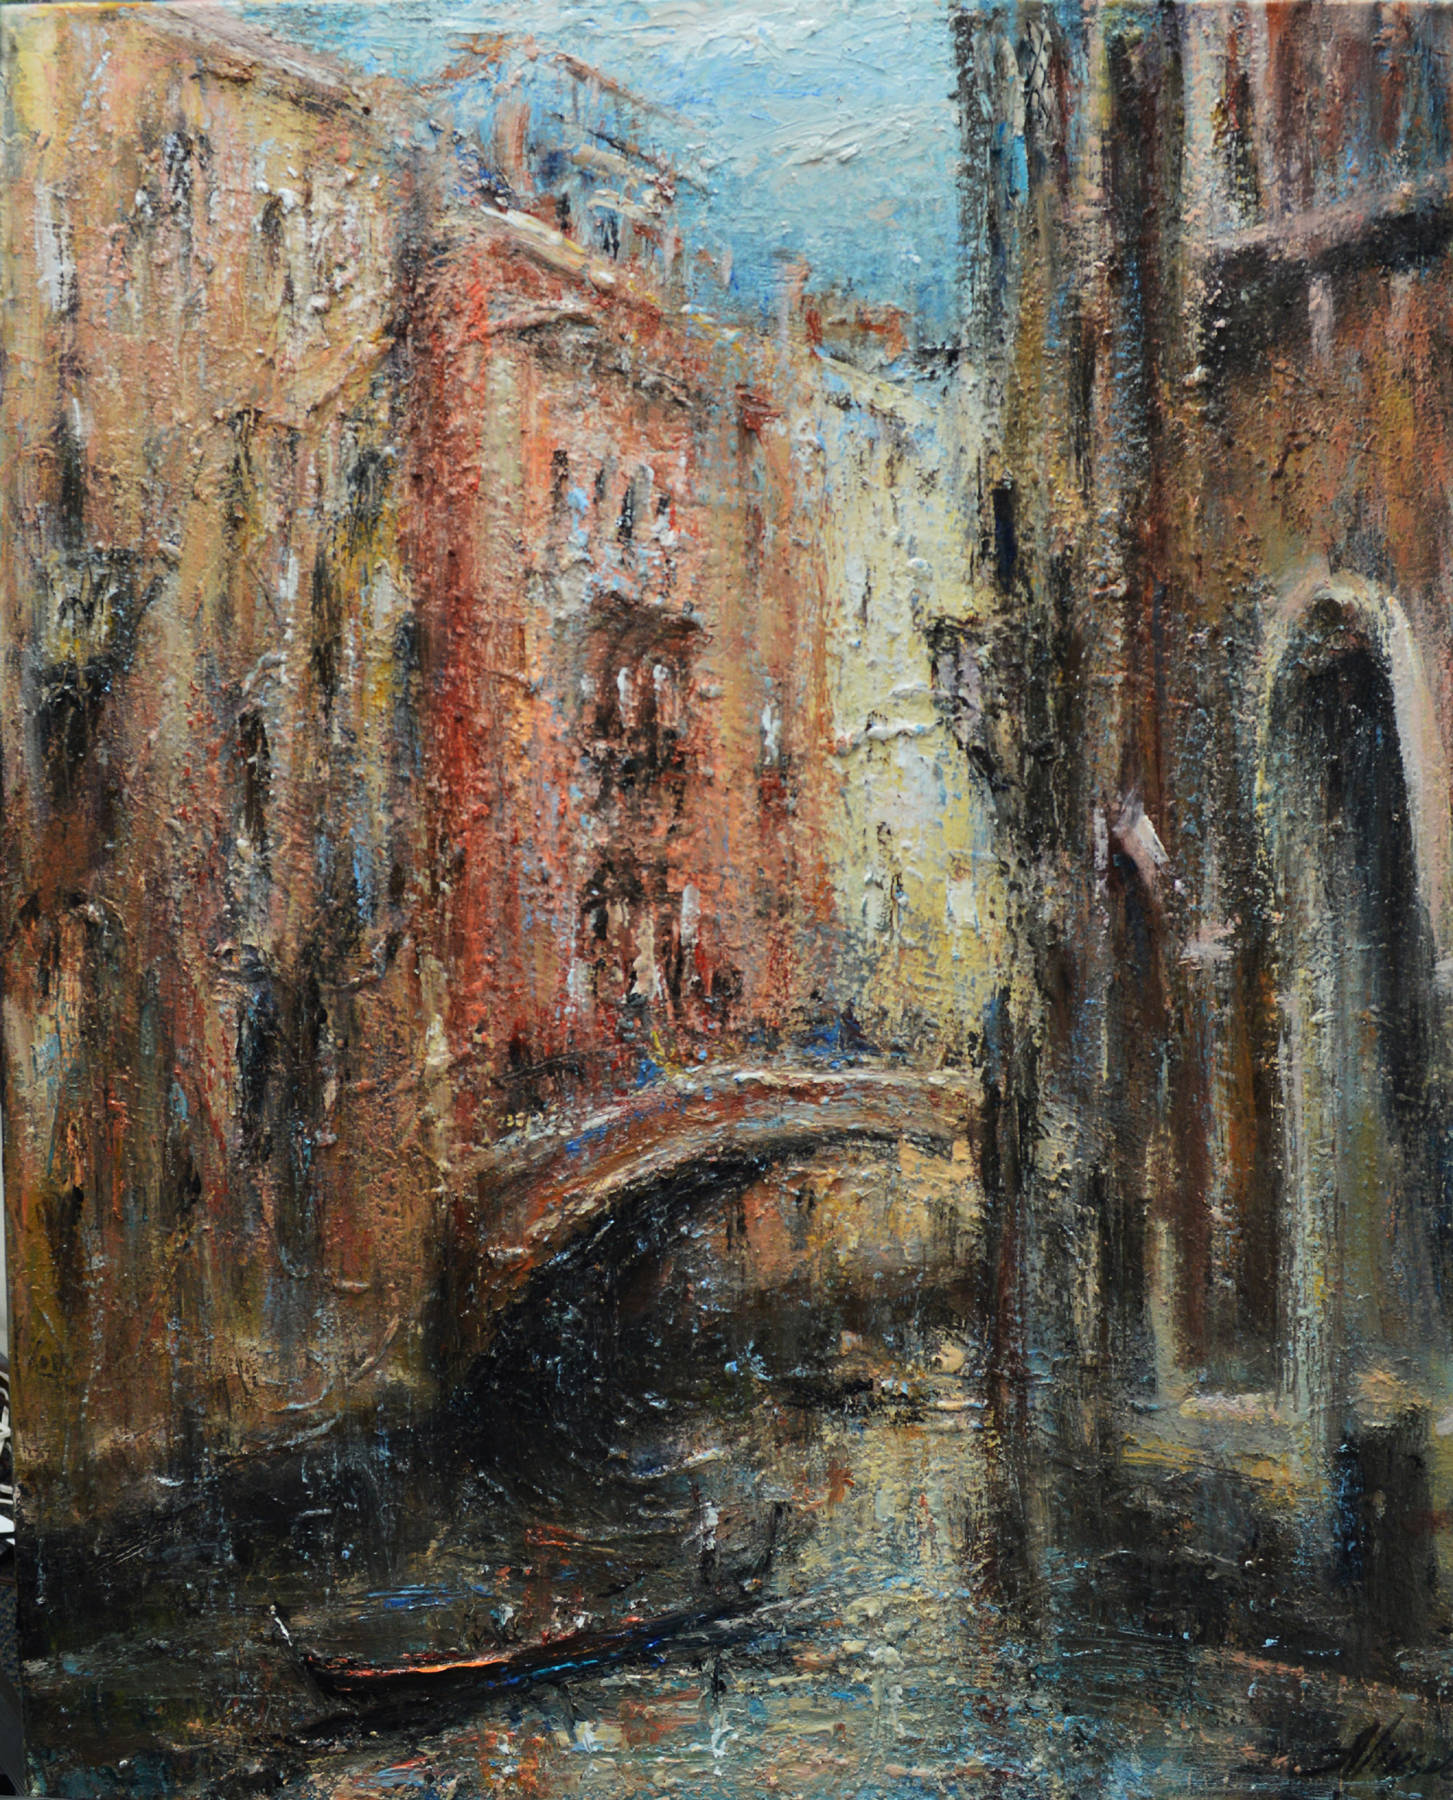 Canals of Venice, 32x24' oil on canvas,2013